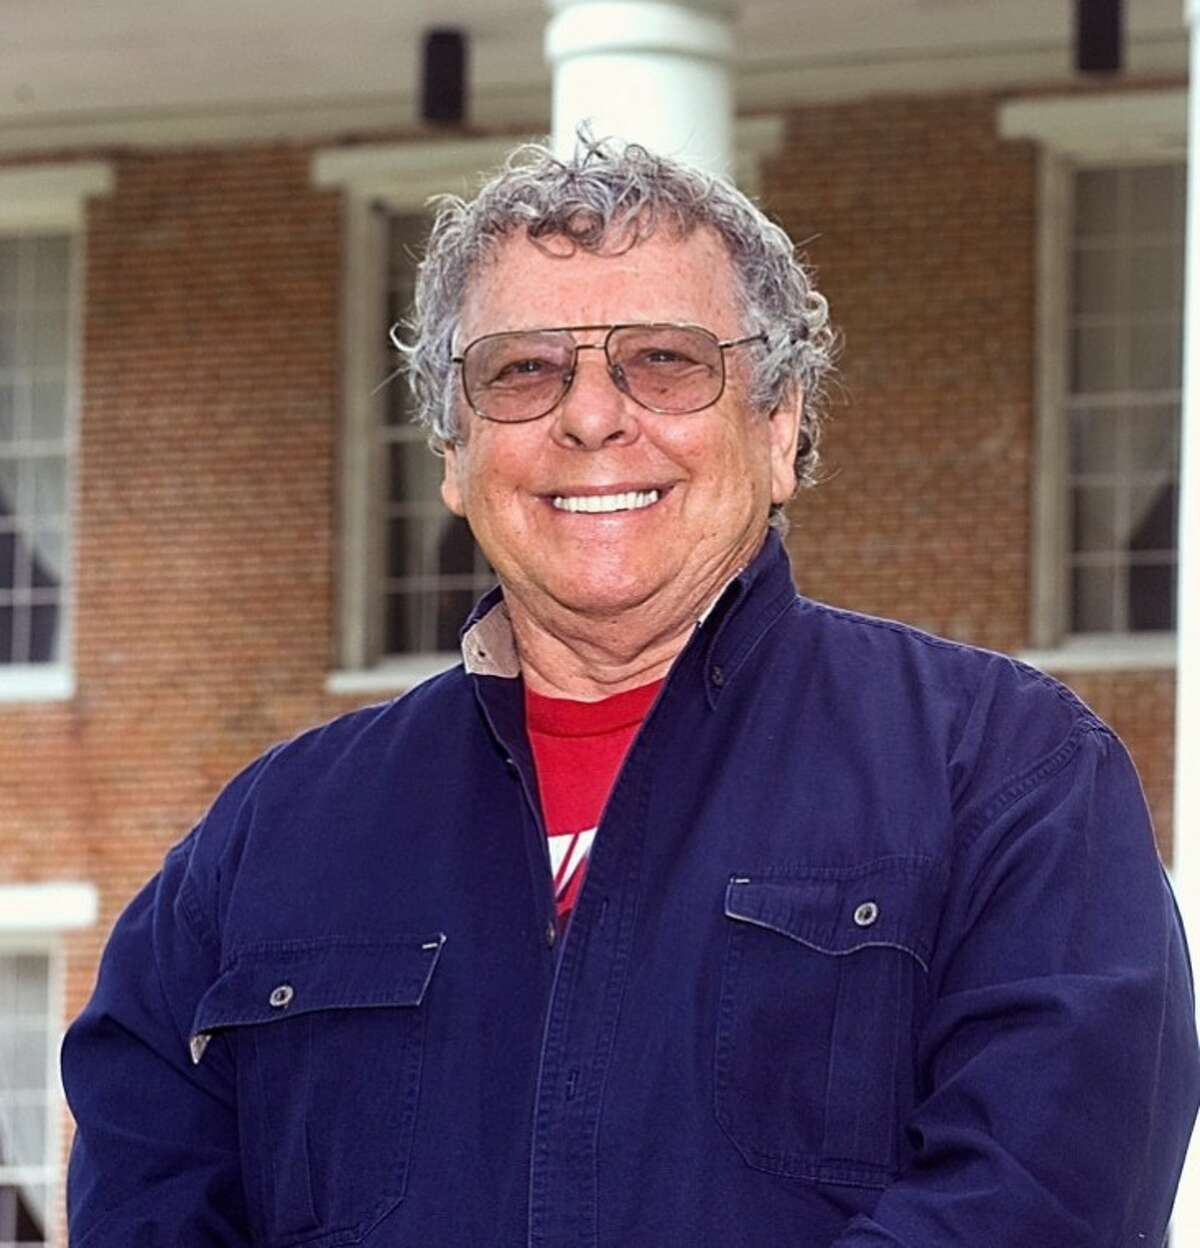 Paul Ruffin, Texas State University System Regents' Professor and Distinguished Professor of English at SHSU, lives in Willis.